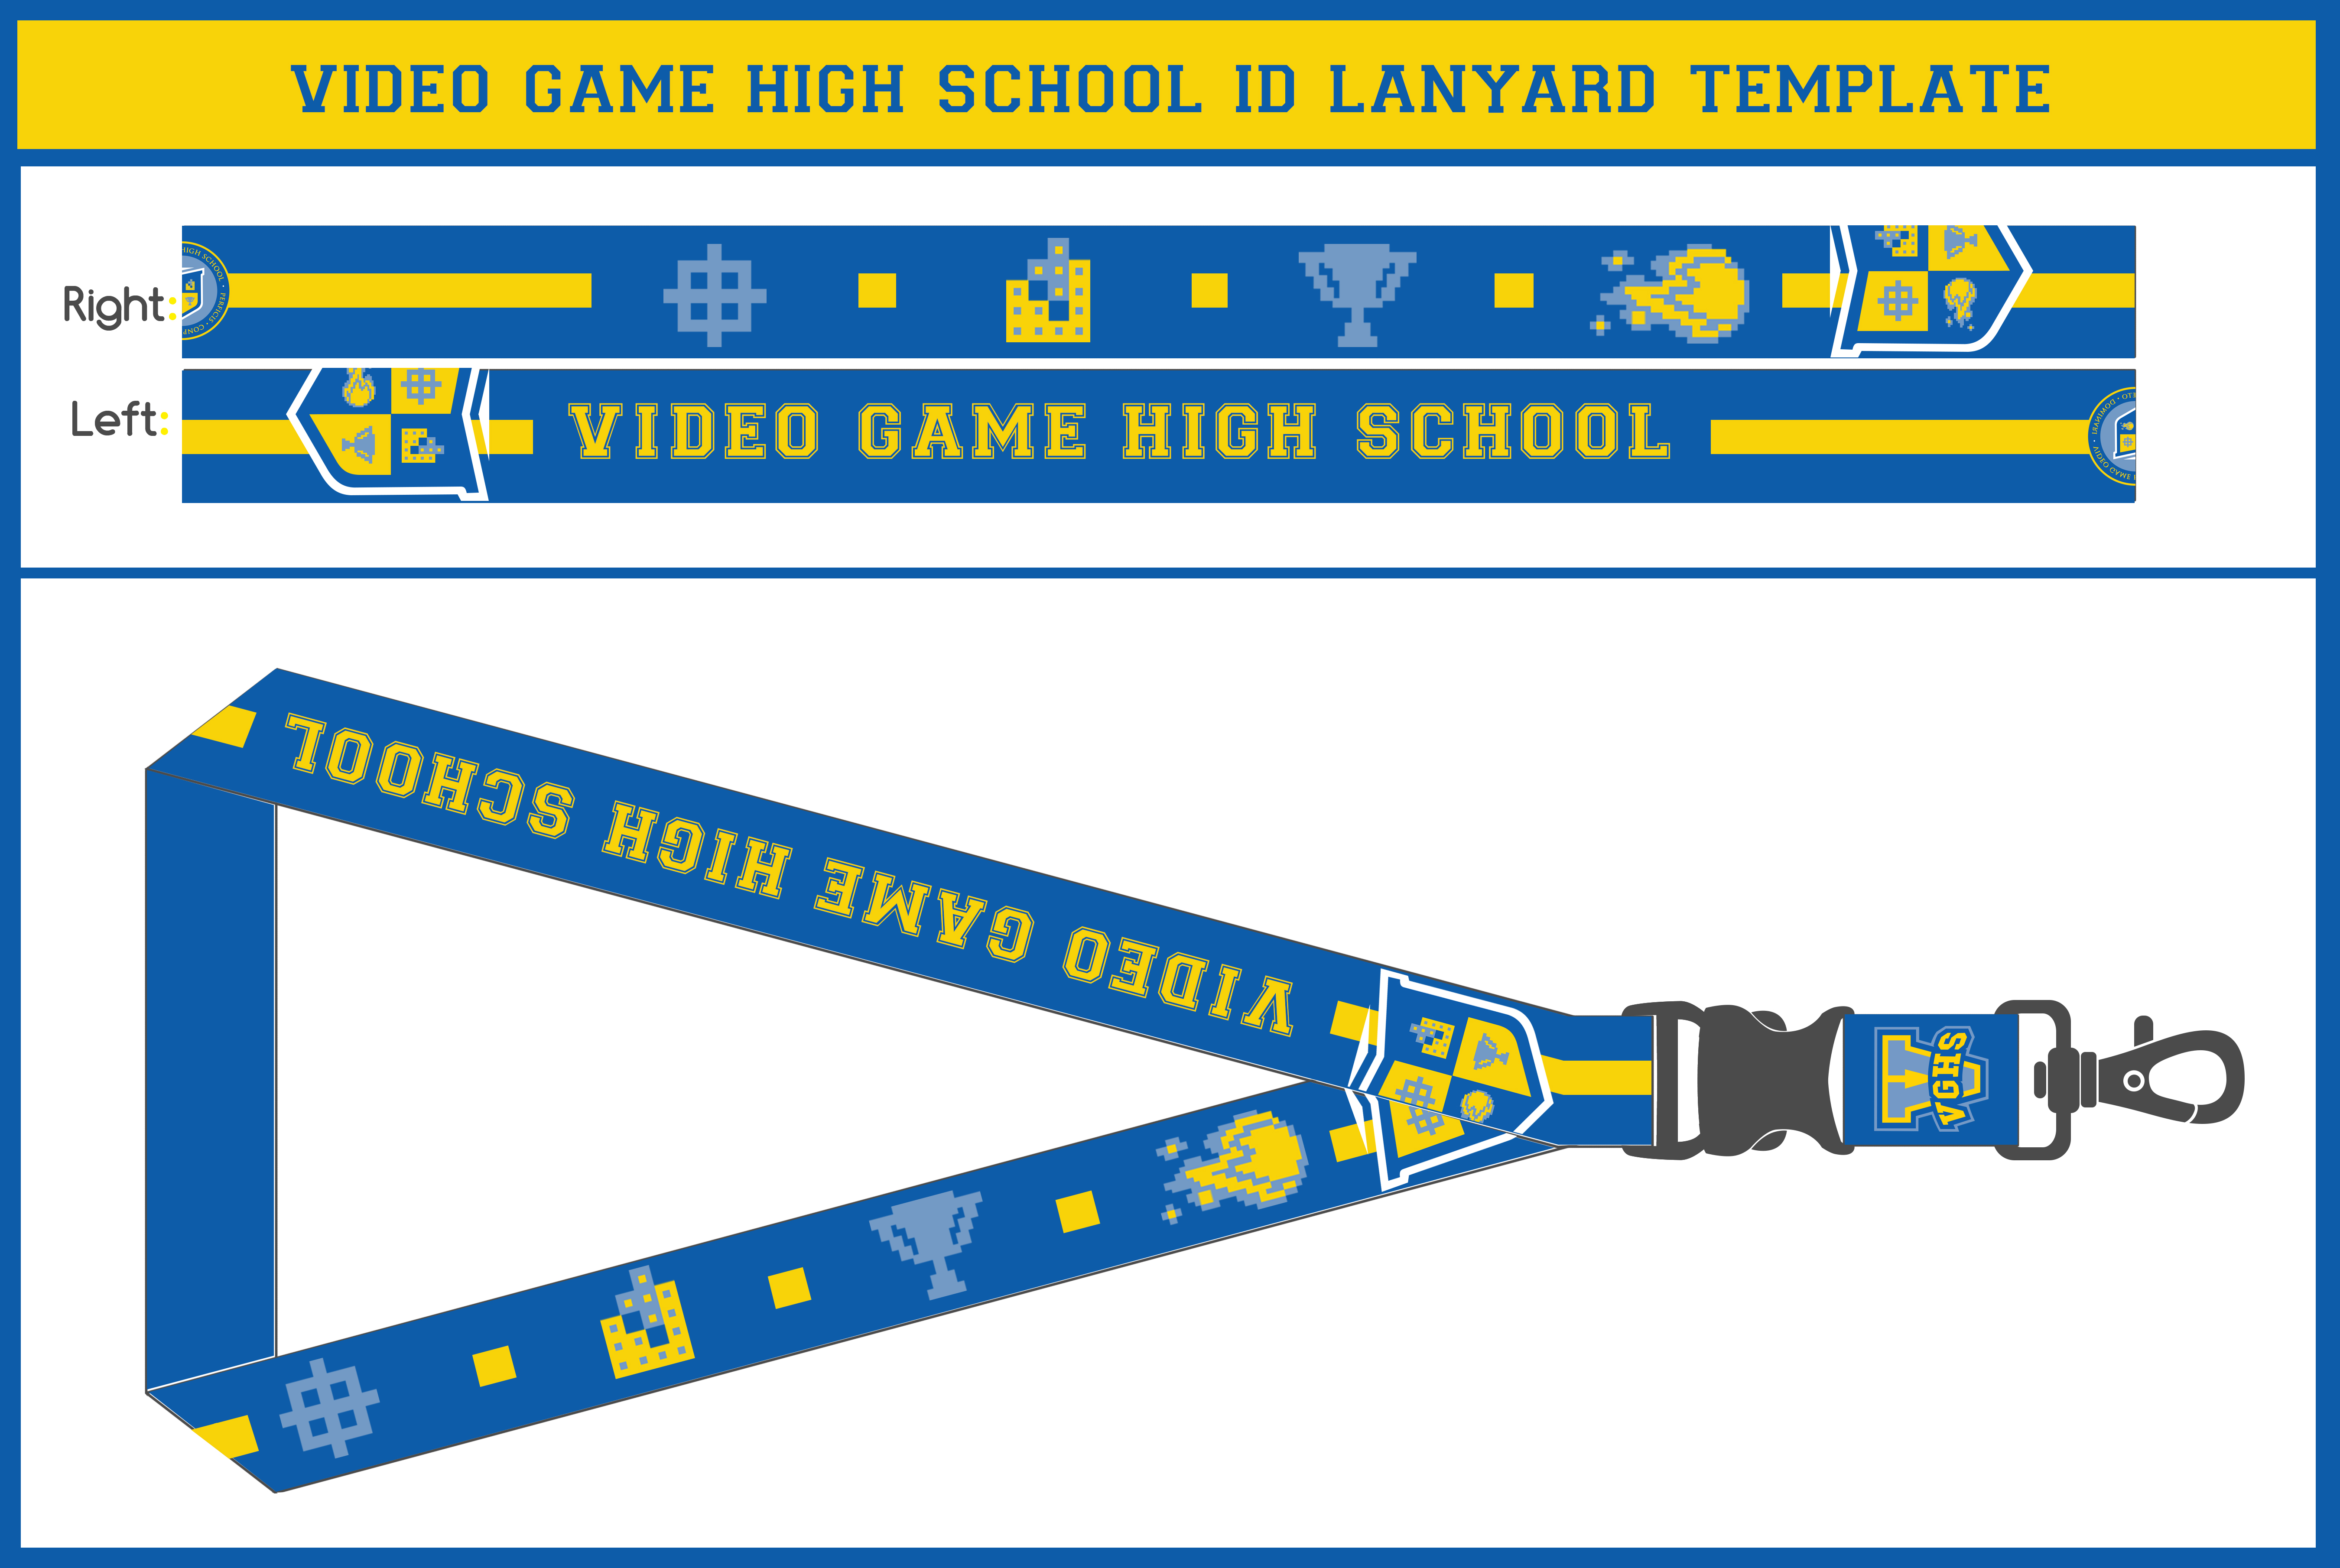 vghs id lanyard by vexvloudz97 on deviantart. Black Bedroom Furniture Sets. Home Design Ideas